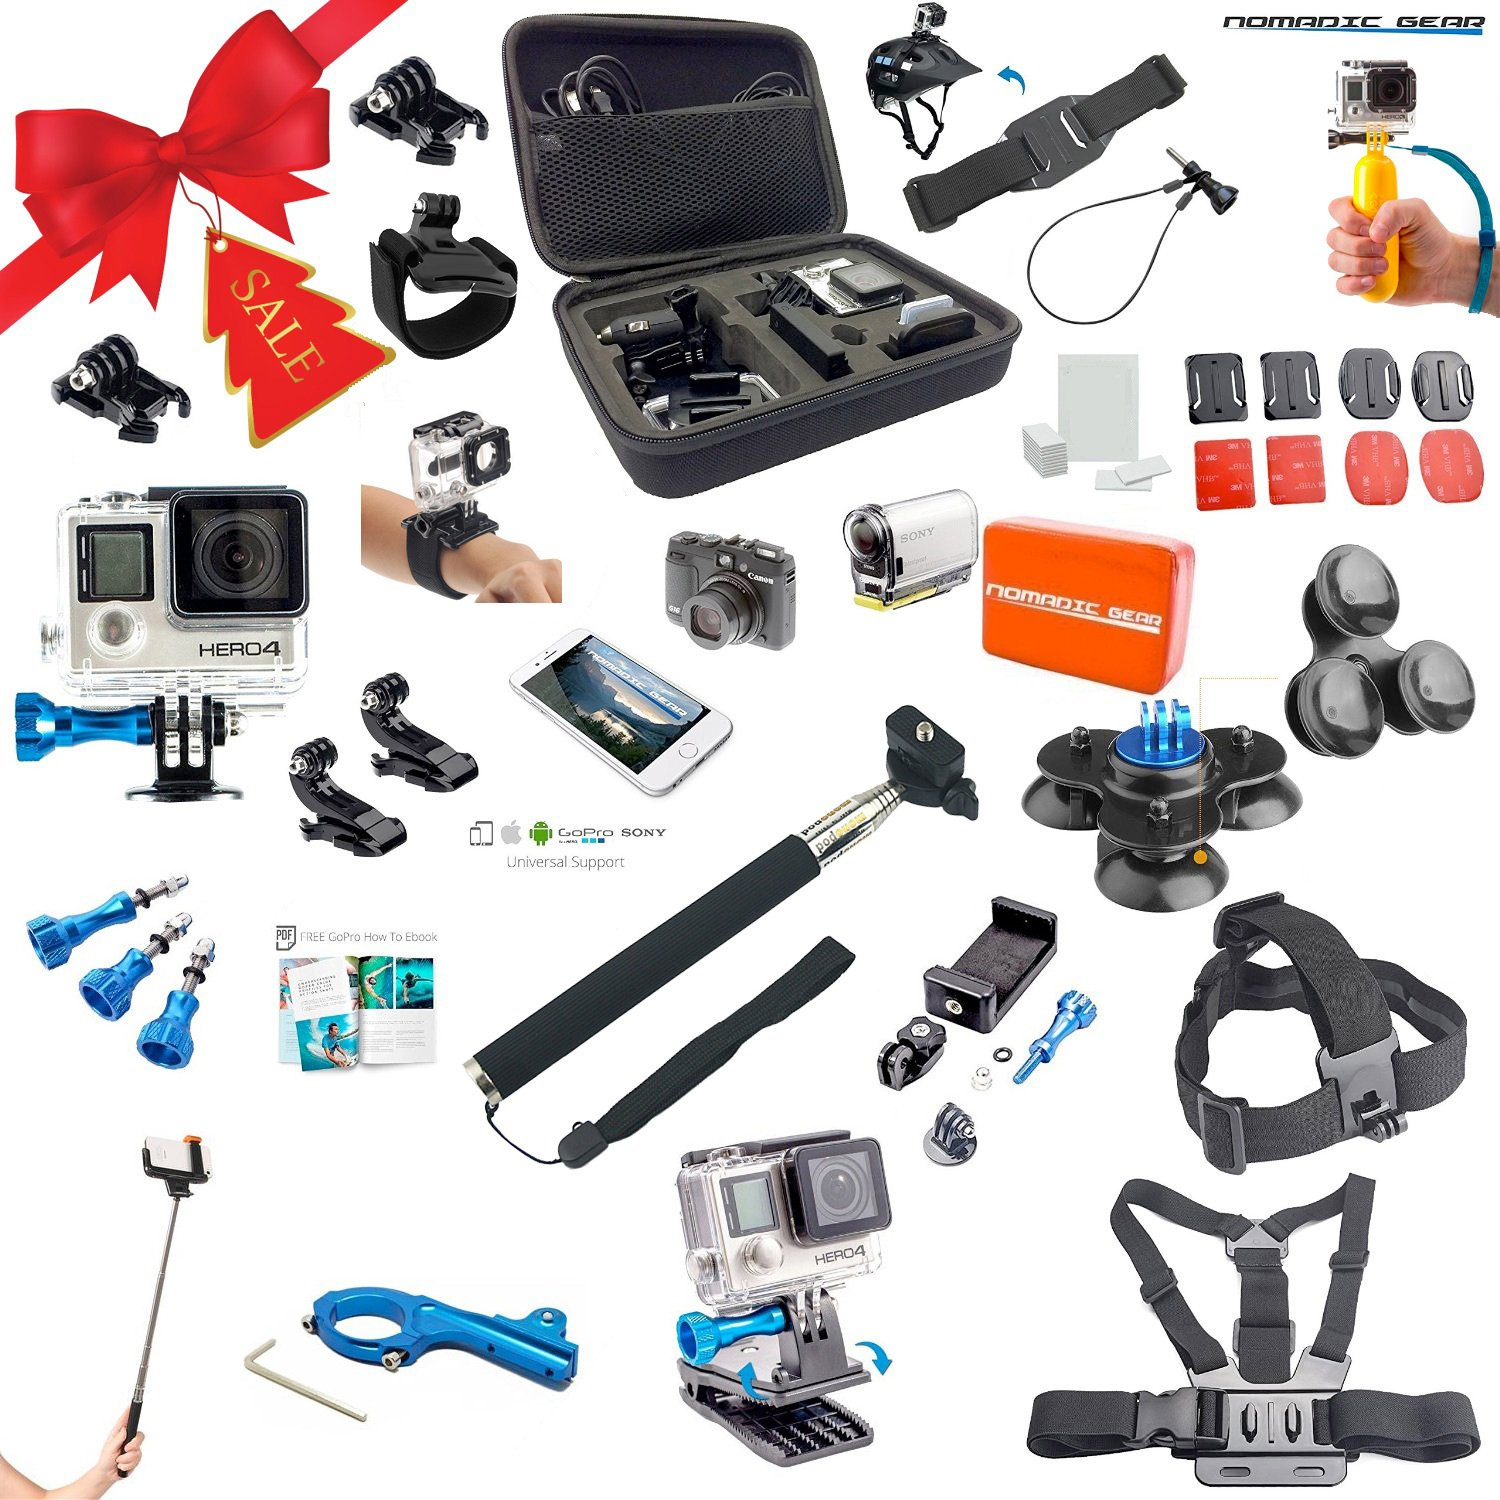 Nomadic Gear Universal Advanced Accessory kit with Epic Photo Shooting 101 ebook for GoPro, Sony Action Camera, Garmin, Ricoh Action Cam, SJCAM and Smartphones (41 Items) by Nomadic Gear